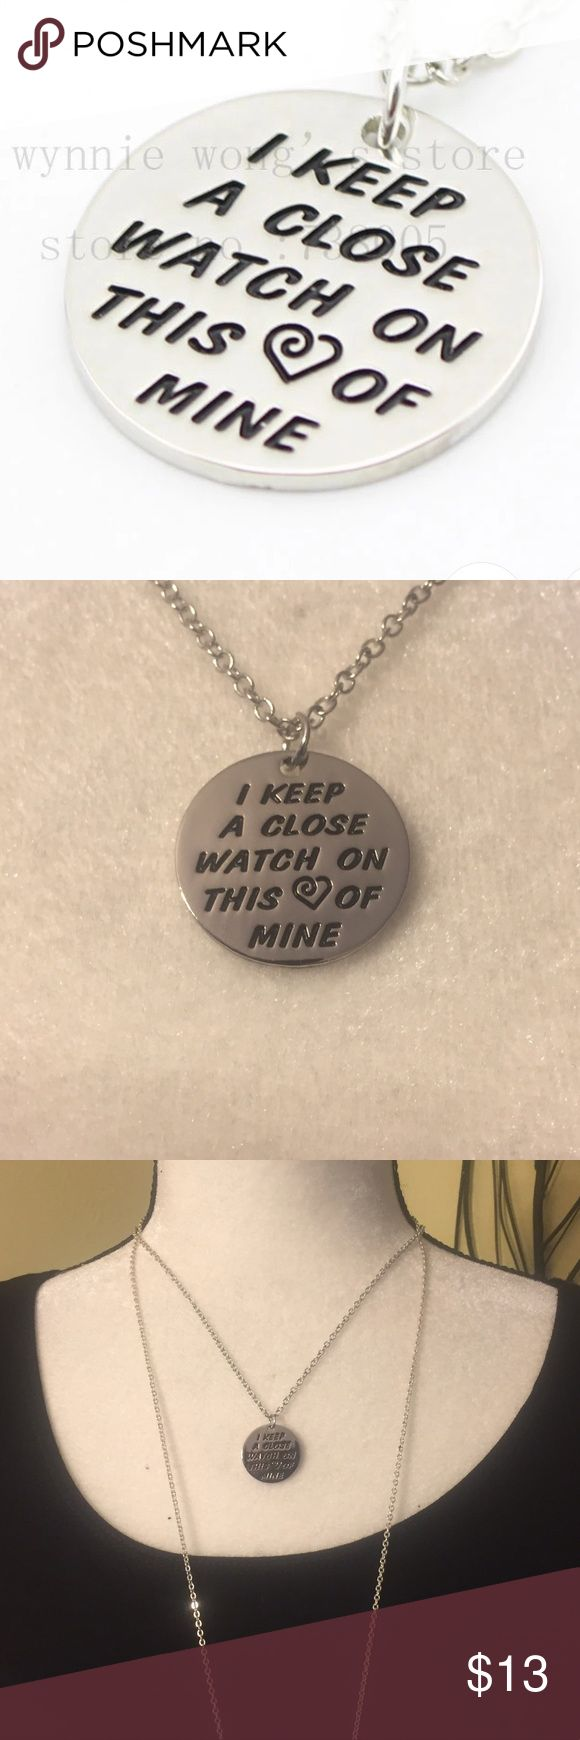 "🆕 JOHNNY CASH INSPIRED NECKLACE 🆕 Brand New Boutique Necklace!!! Silver fashion necklace stamped with "" I keep a close watch on this ❤️ of mine"". Chain measures 45cm and pendent measures 2.2 cm. Jewelry Necklaces"